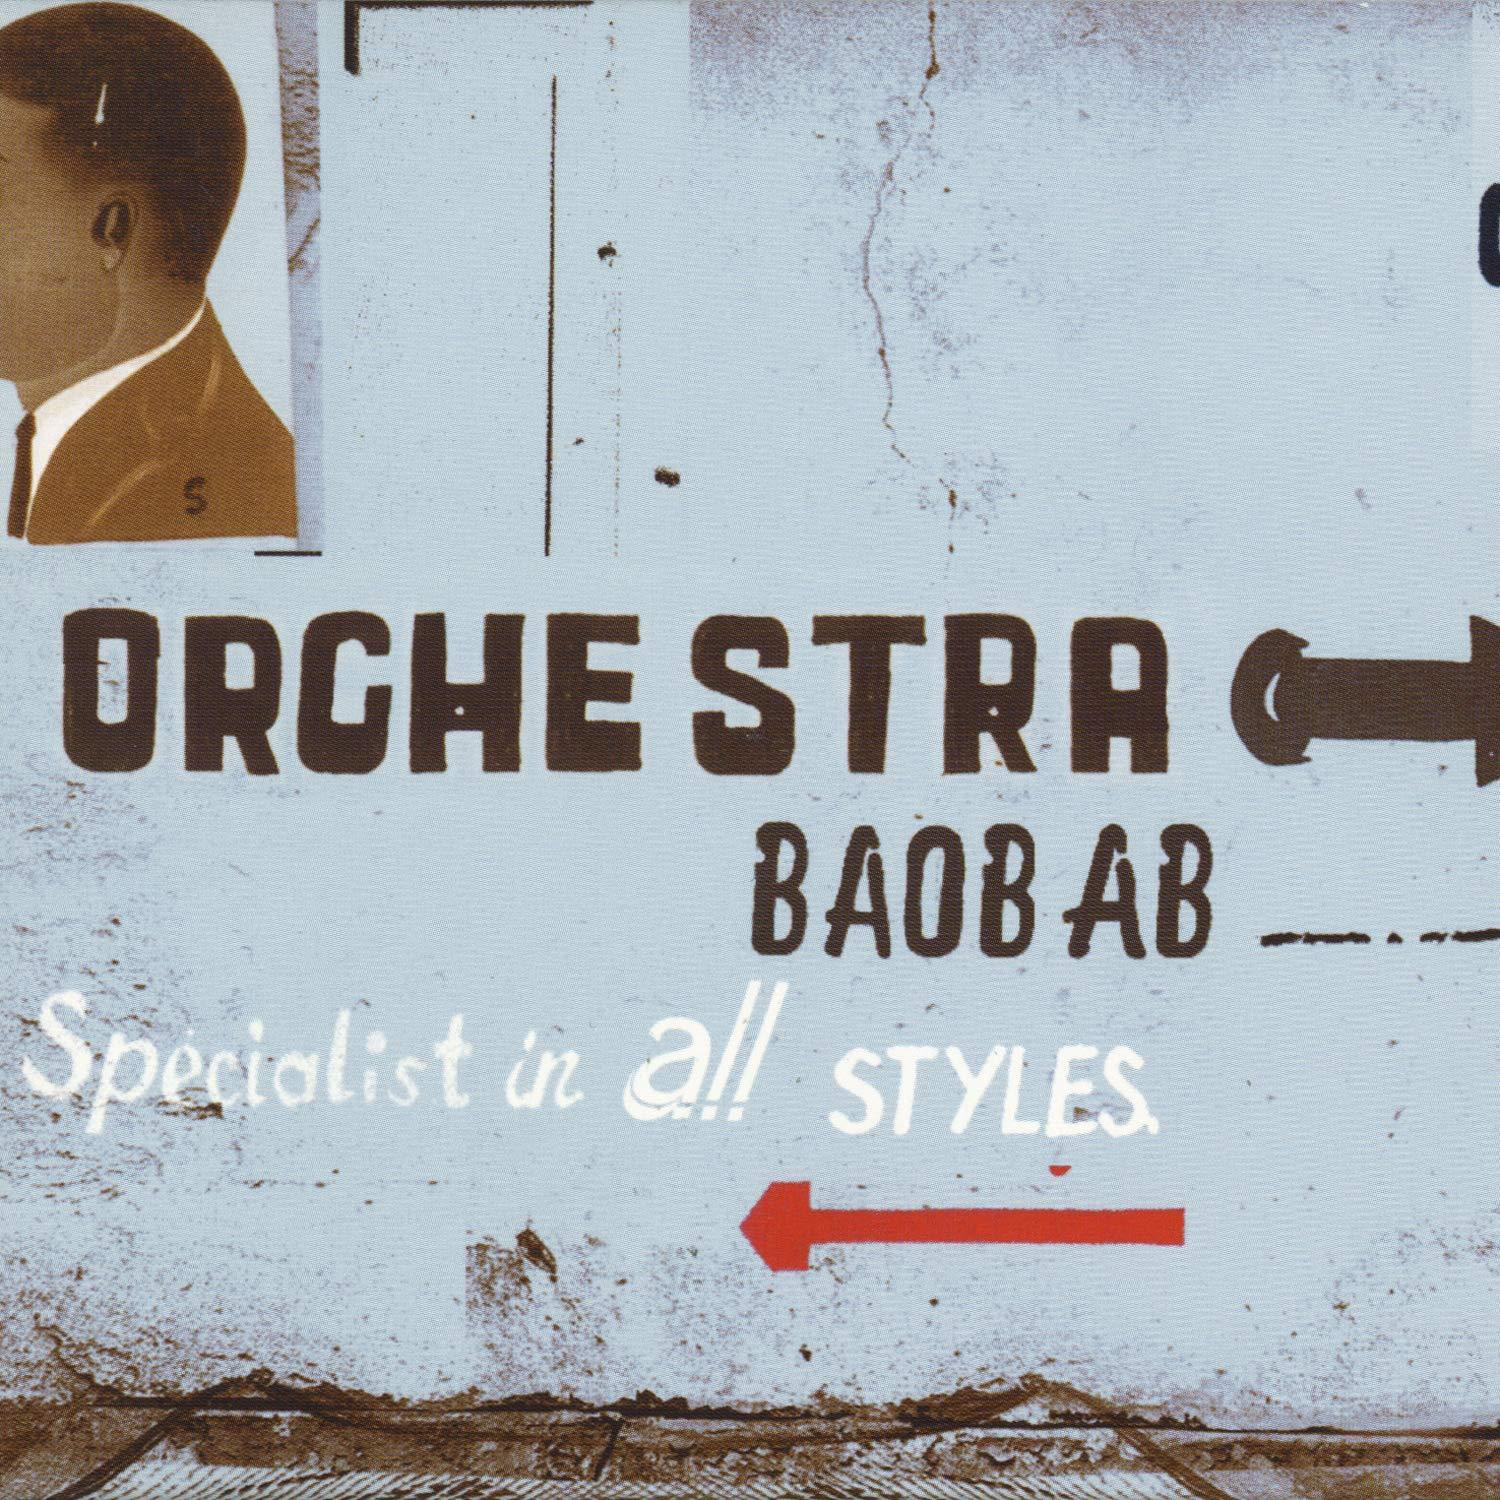 Orchestra Baobab - Specialist In All Styles [LP] - Urban Vinyl | Records, Headphones, and more.